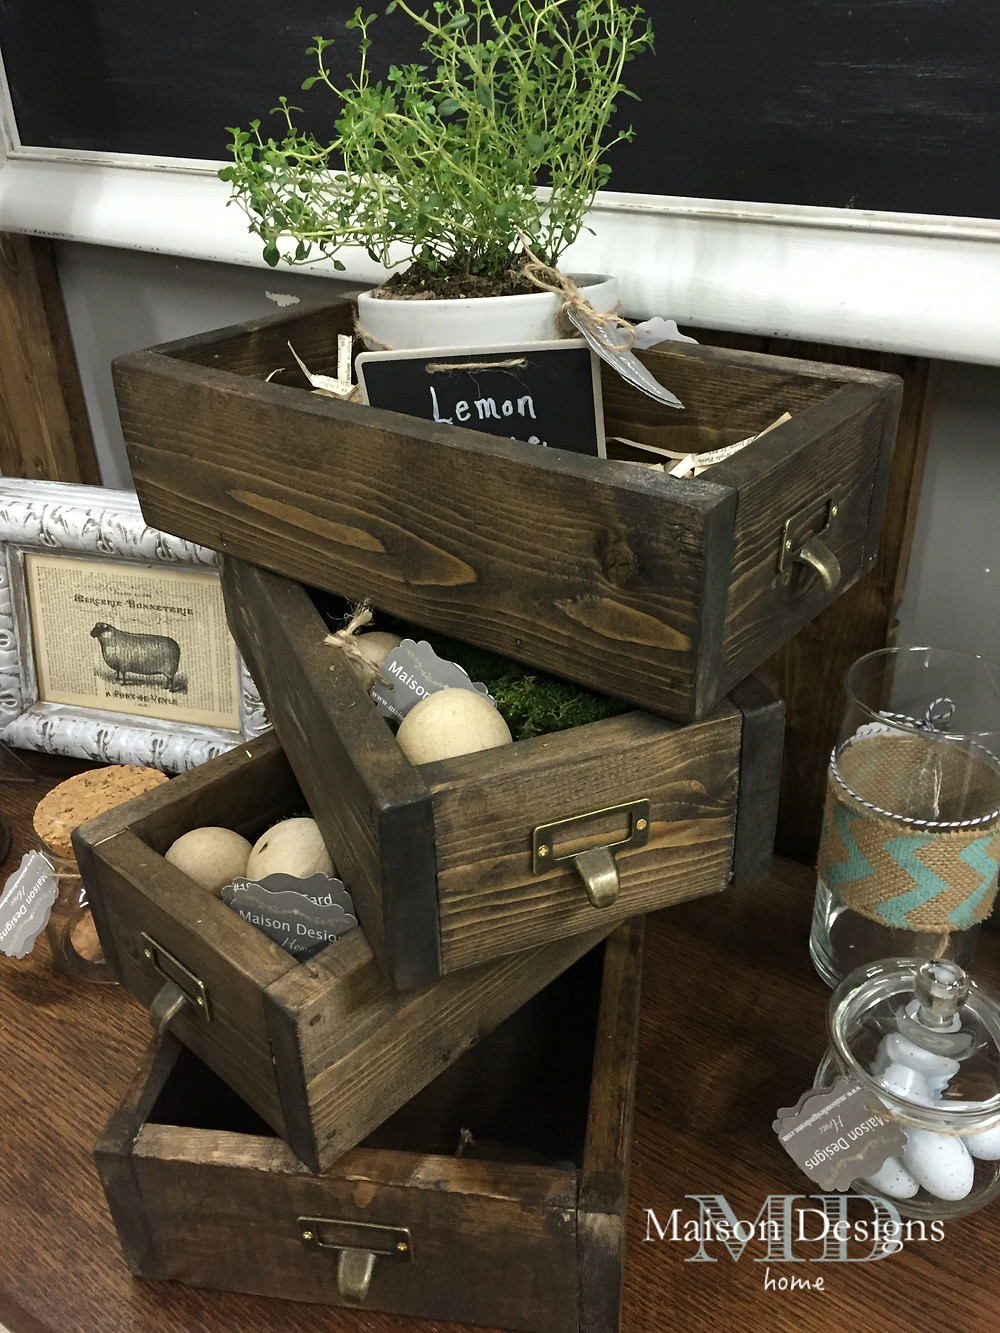 Library Pull Display boxes ~ Maison Designs Home